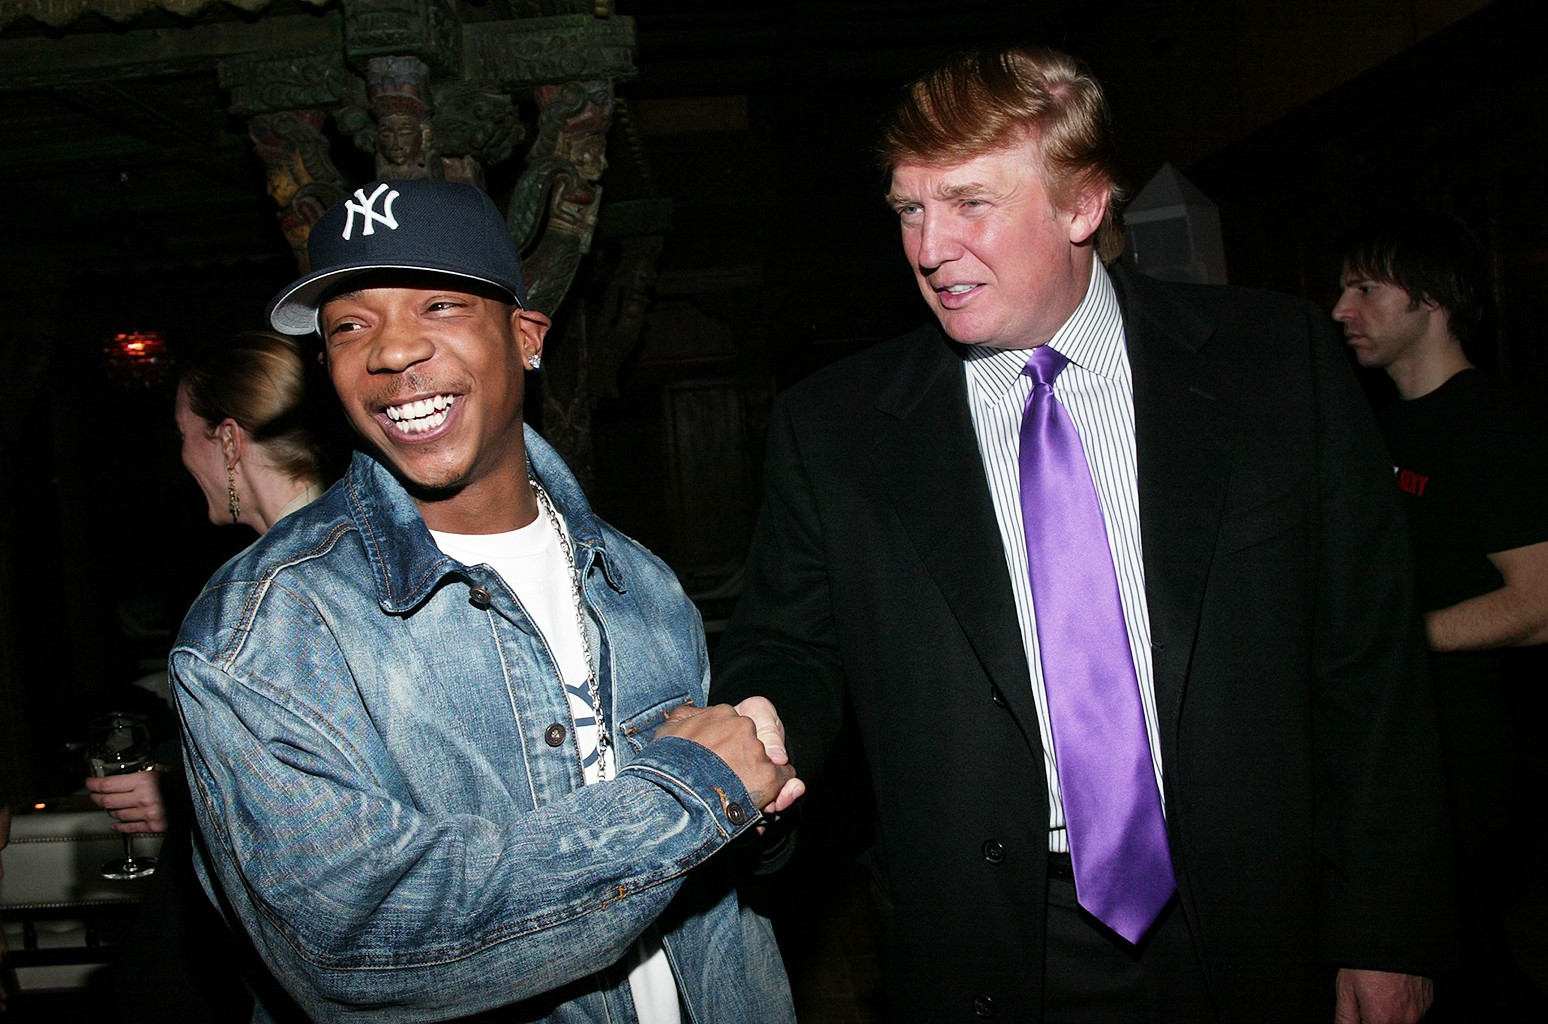 Ja Rule and Donald Trump at Spice Market Feb. 11, 2003 in New York City.